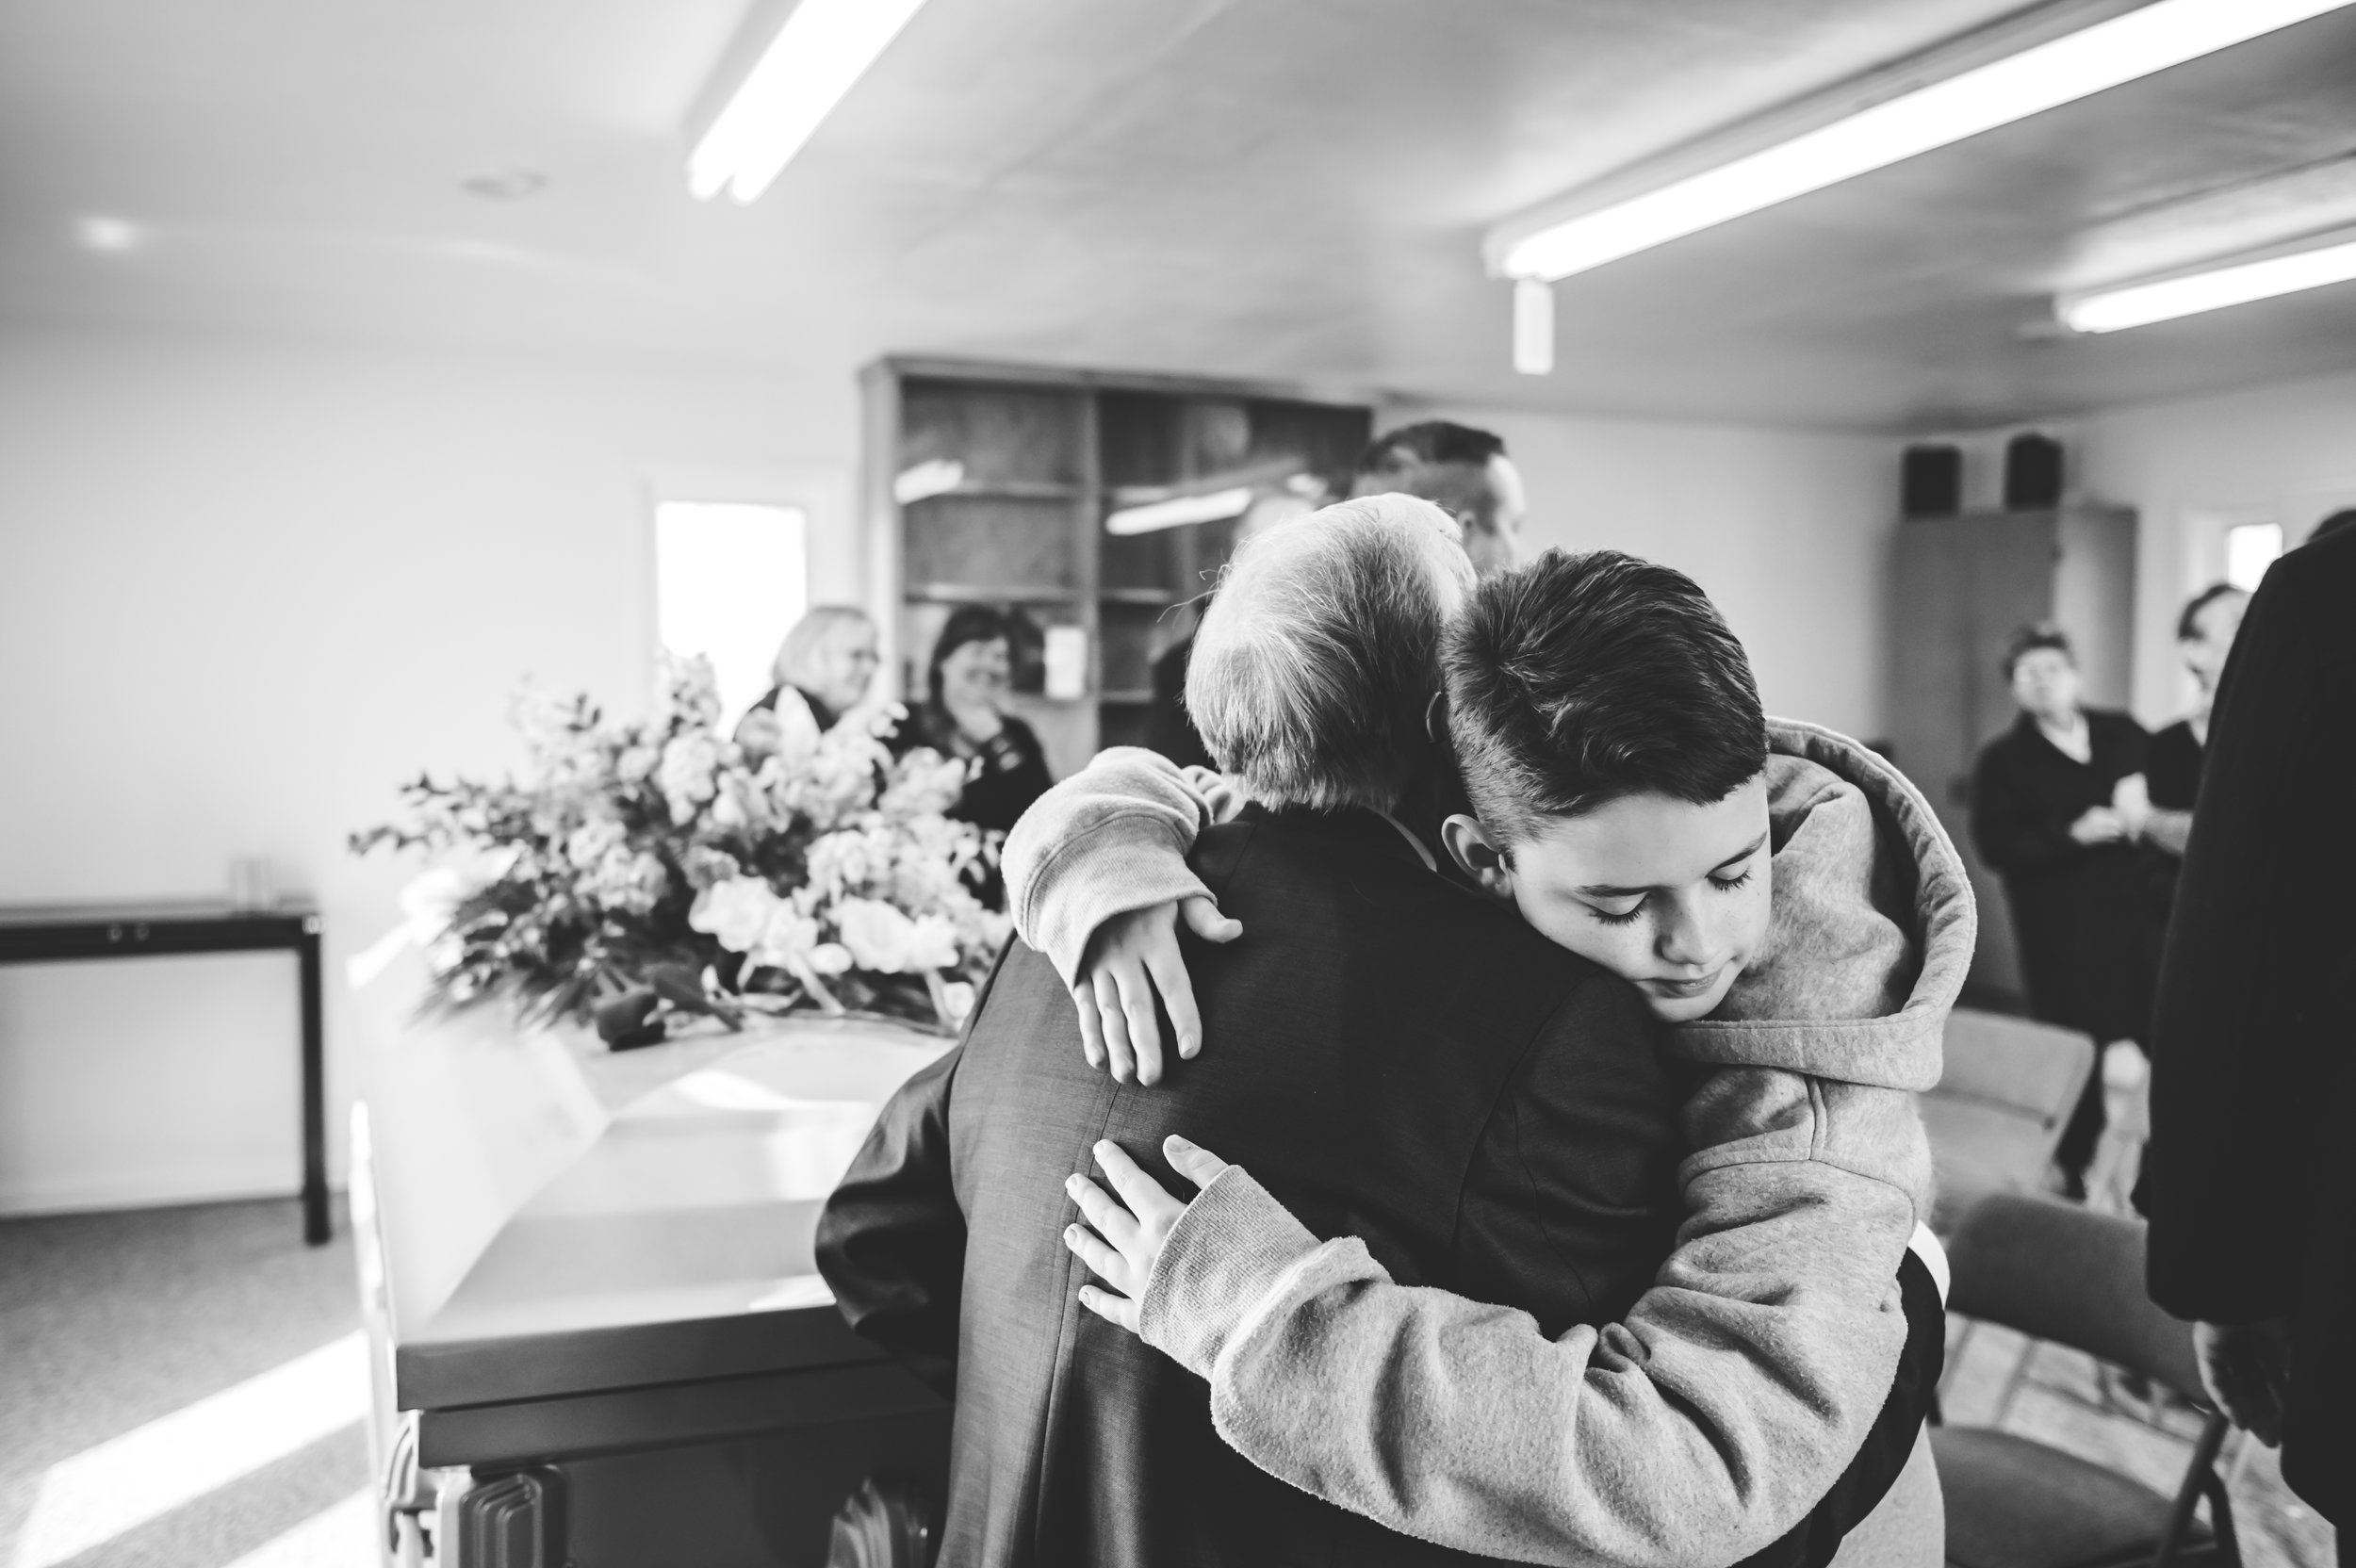 There are few photographic events in life that can capture the tenderness a family shares in their deepest moments of need.